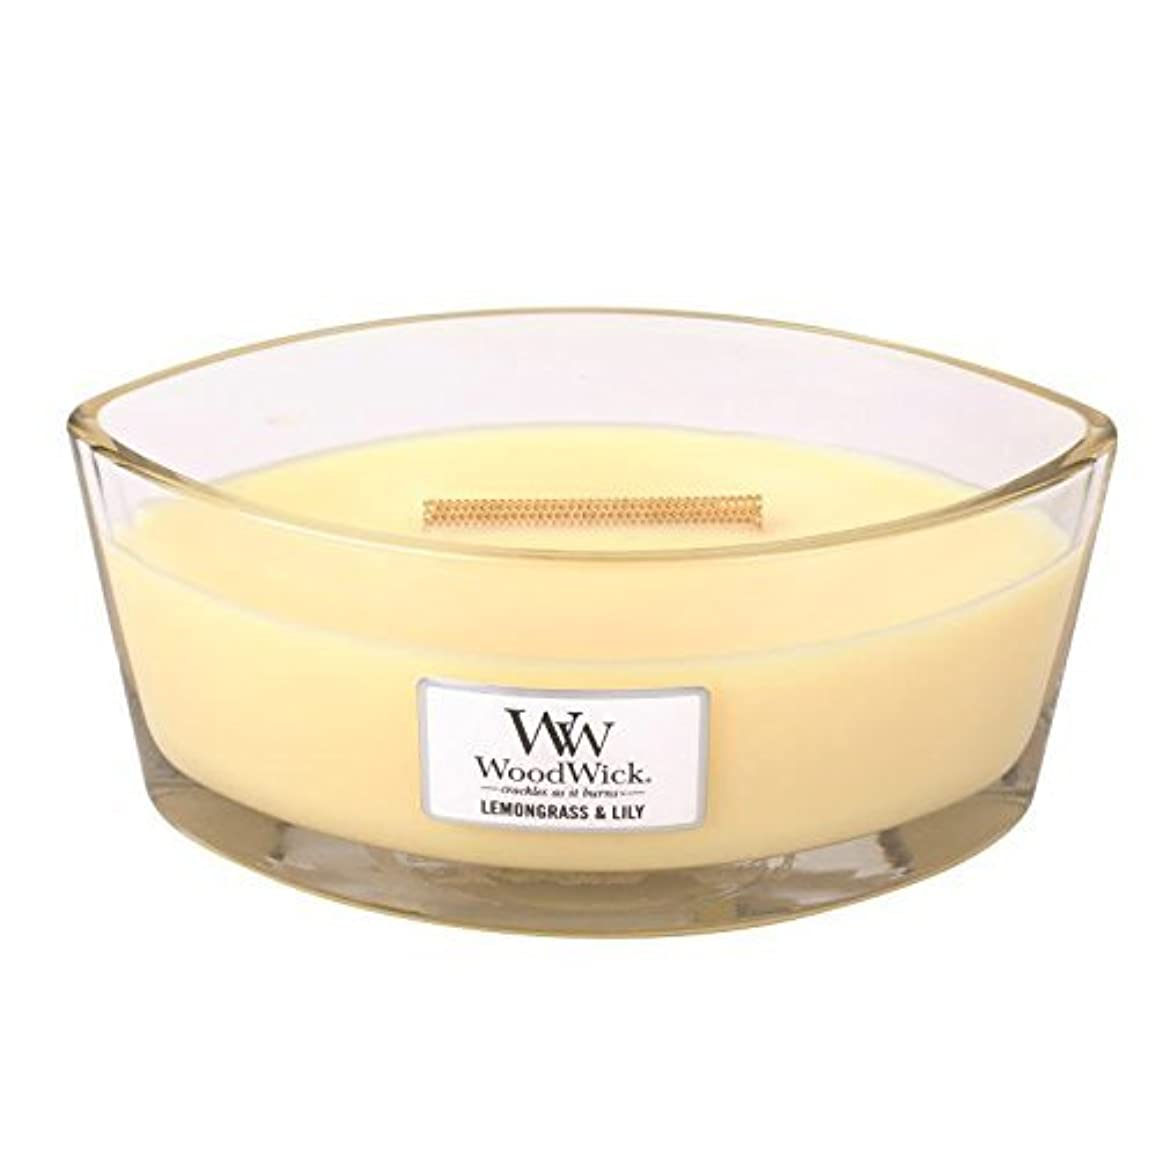 LEMONGRASS LILY HearthWick Flame Large Scented Candle by WoodWick by WoodWick